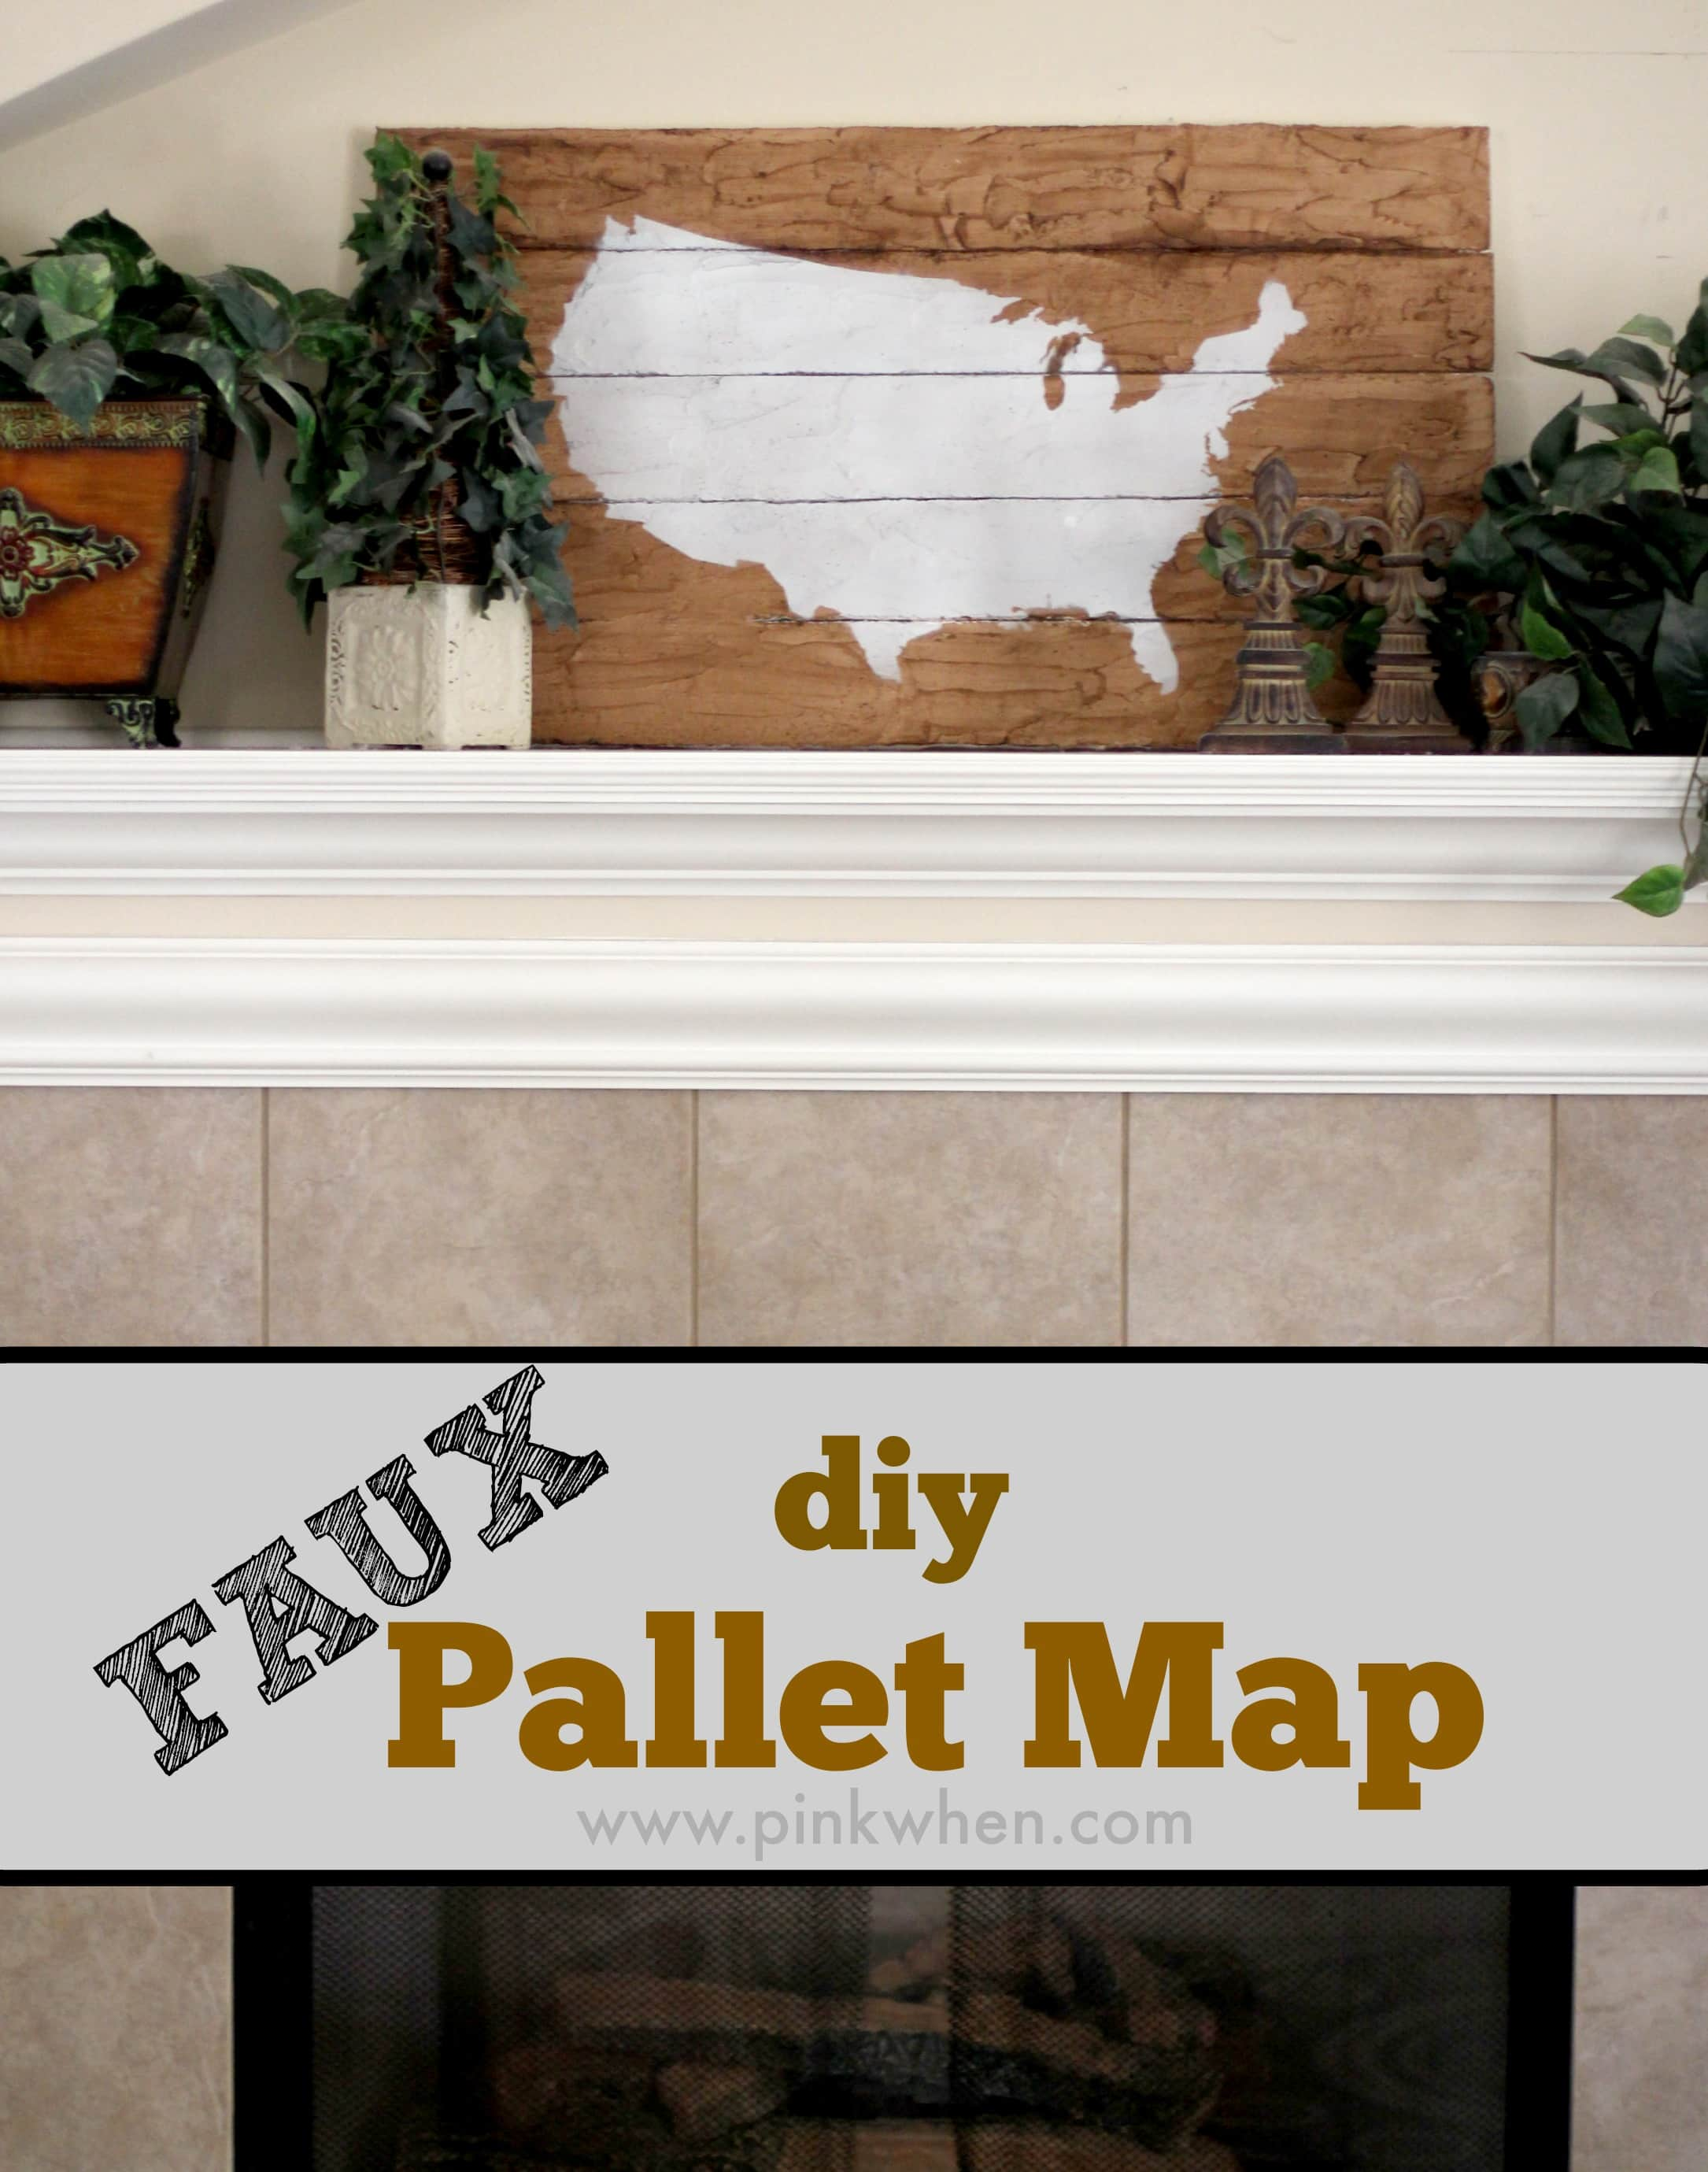 DIY Faux Wood Pallet Map Art via PinkWhen.com